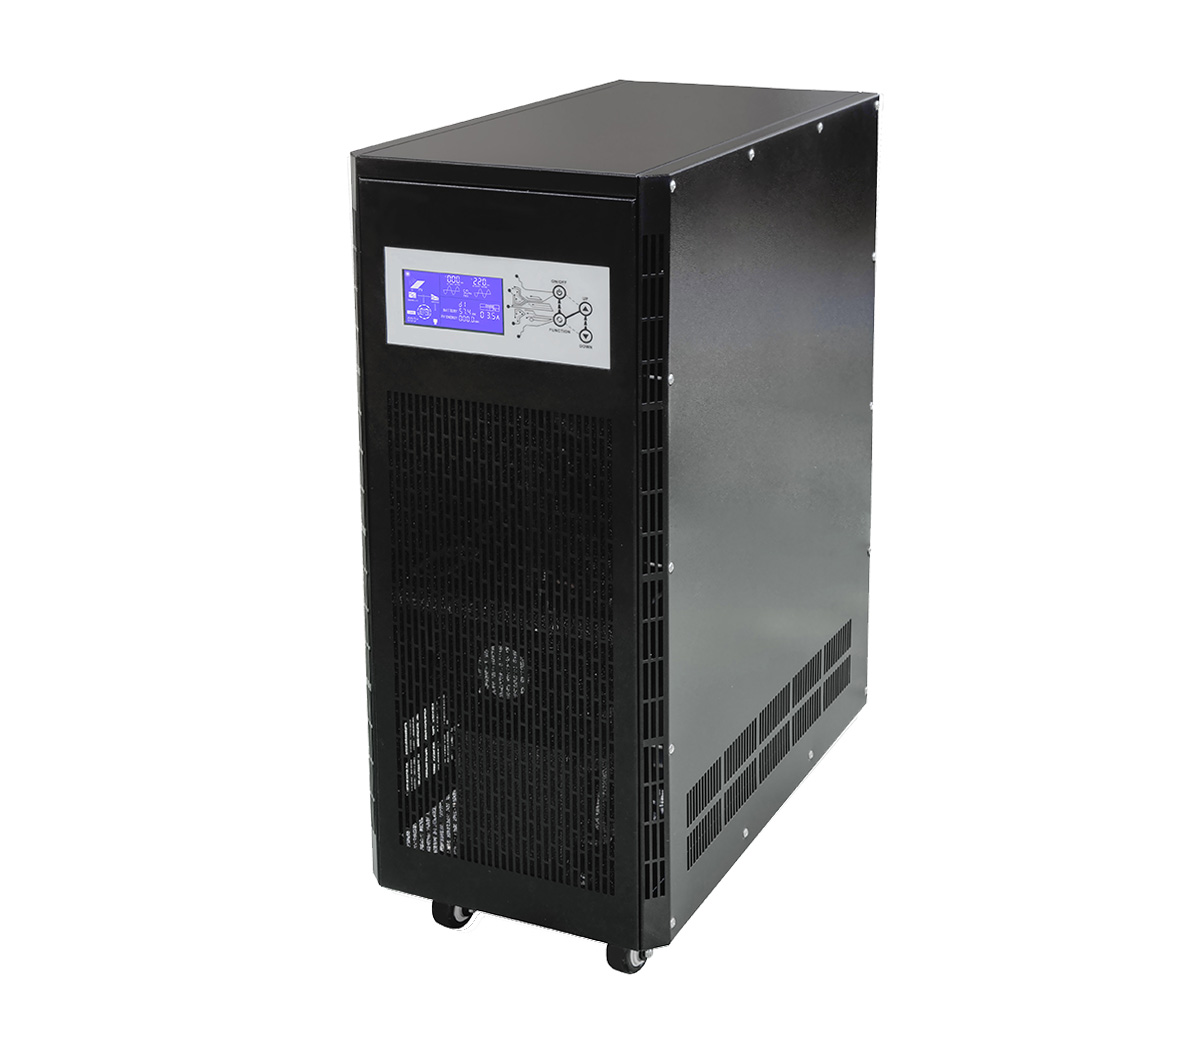 HDSX Three Phase Inverter(3.2kw-6.4kw)